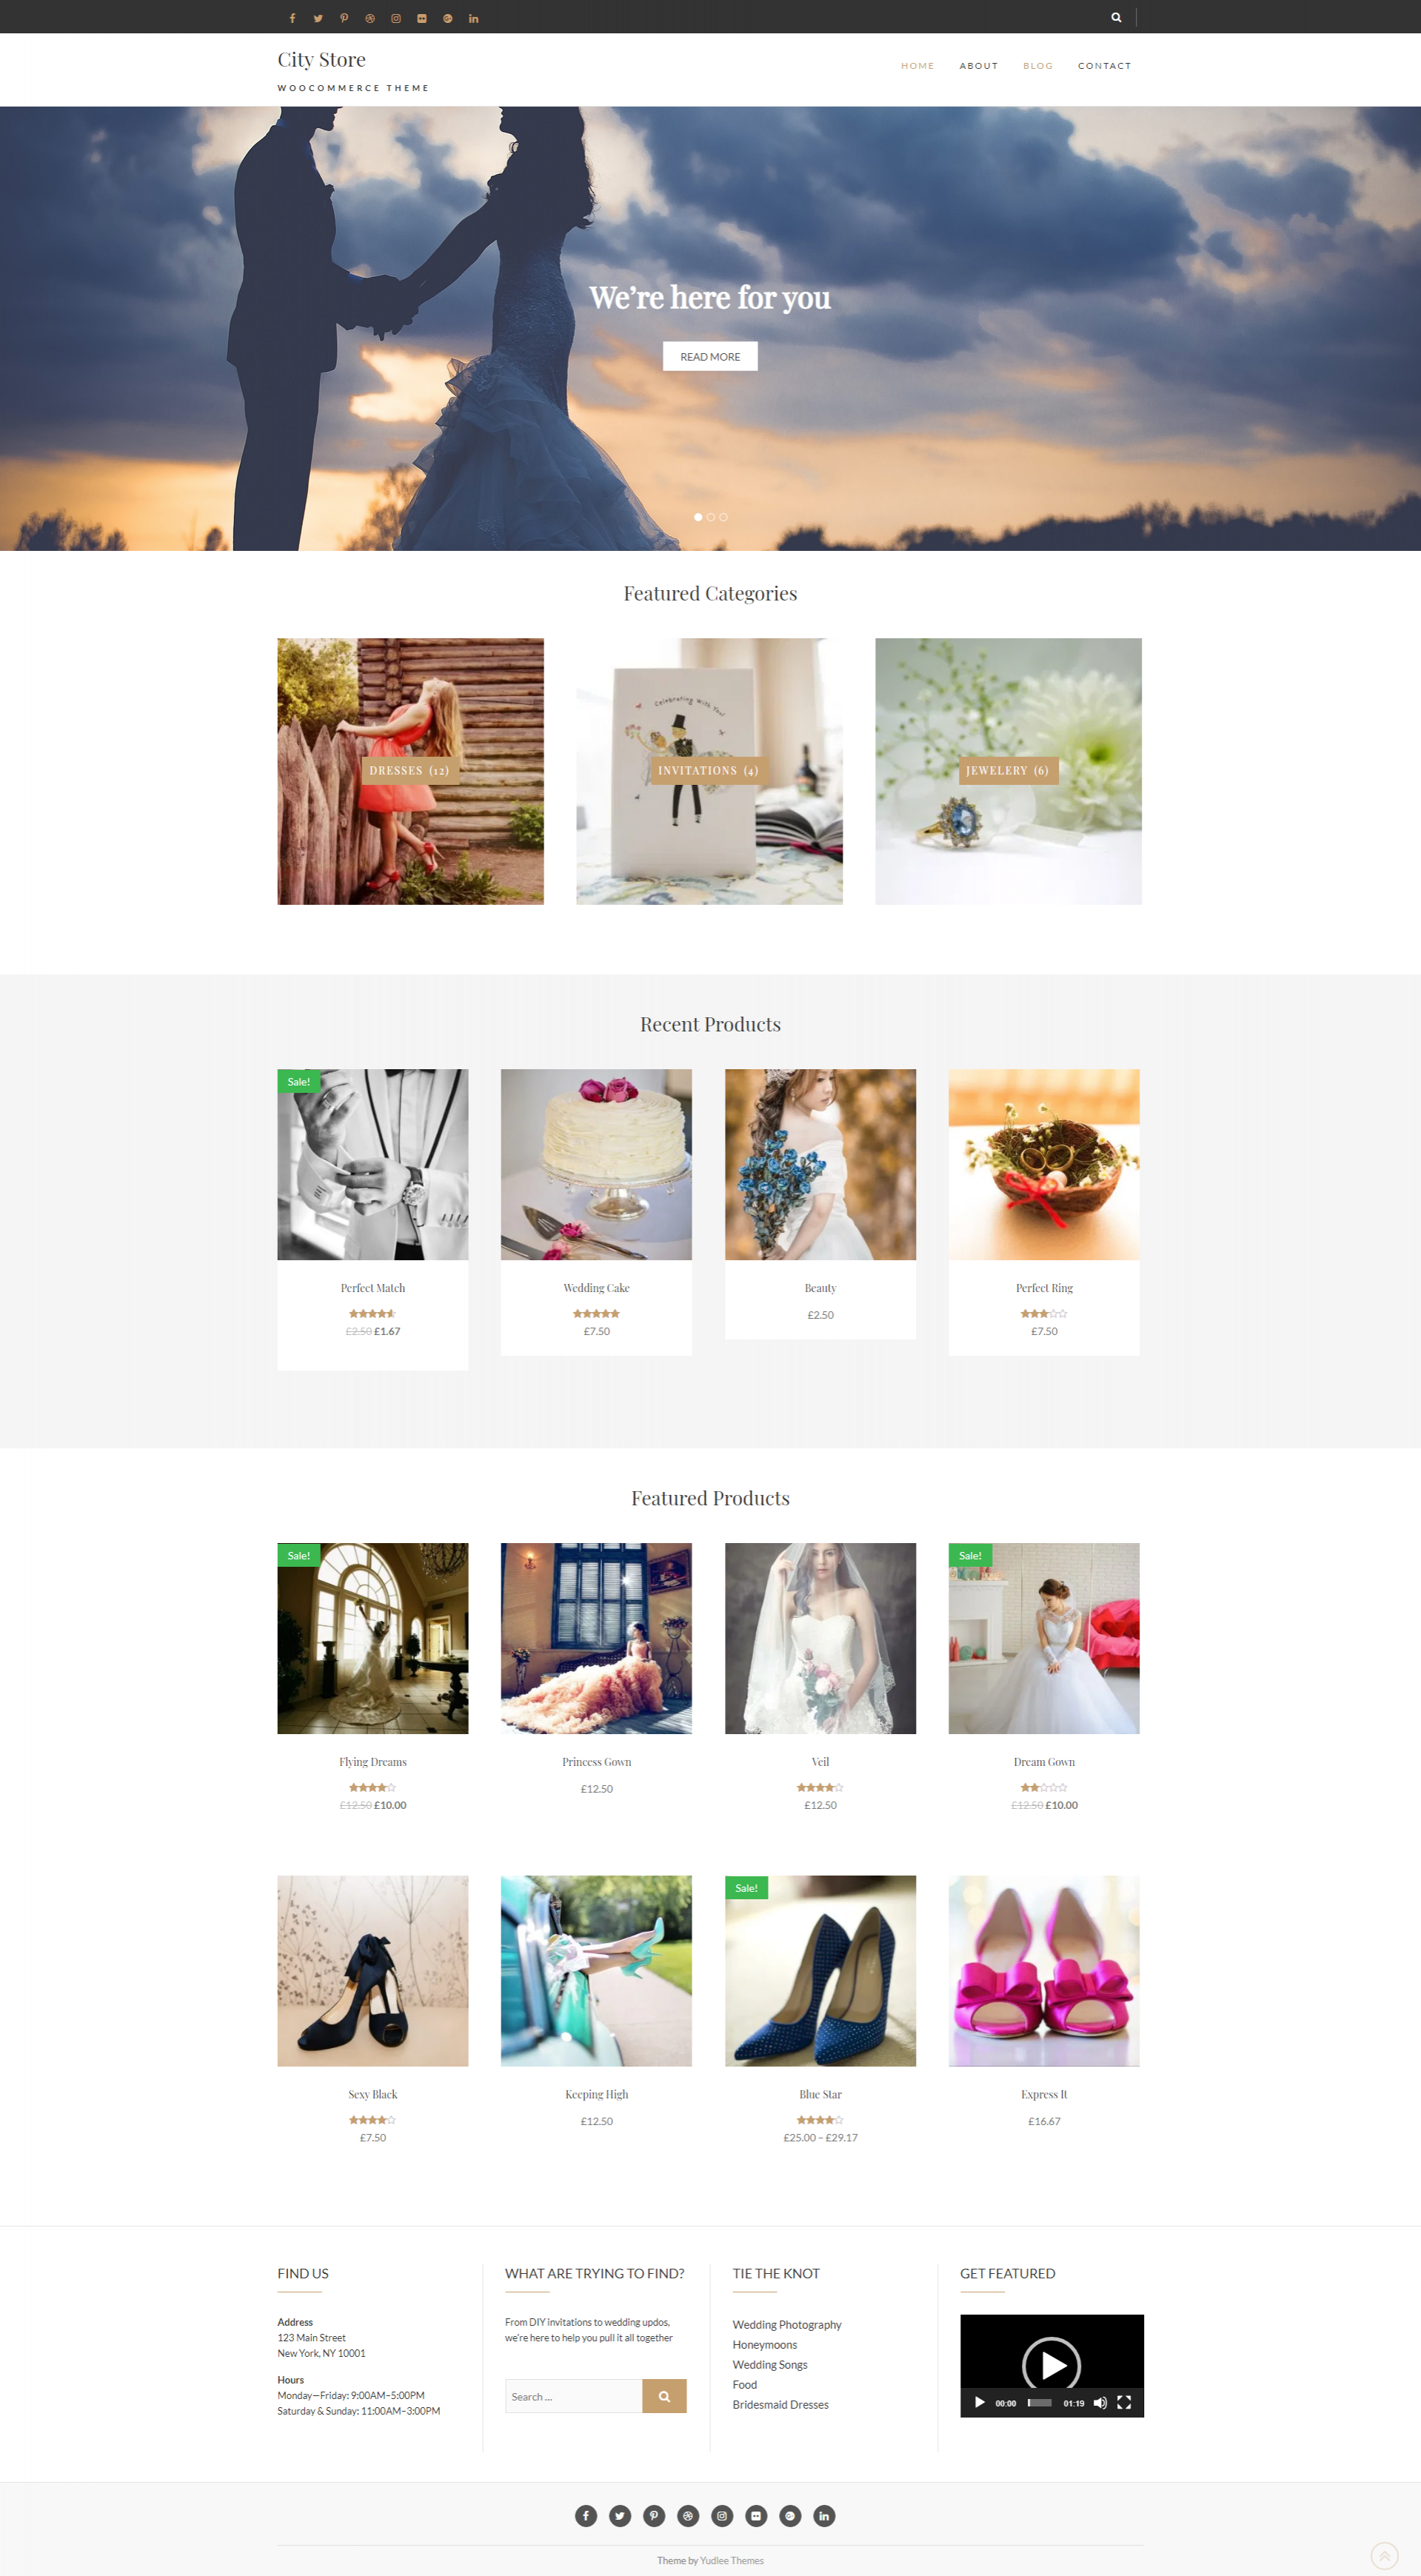 City Store - Free Simple and Clean WooCommerce Theme